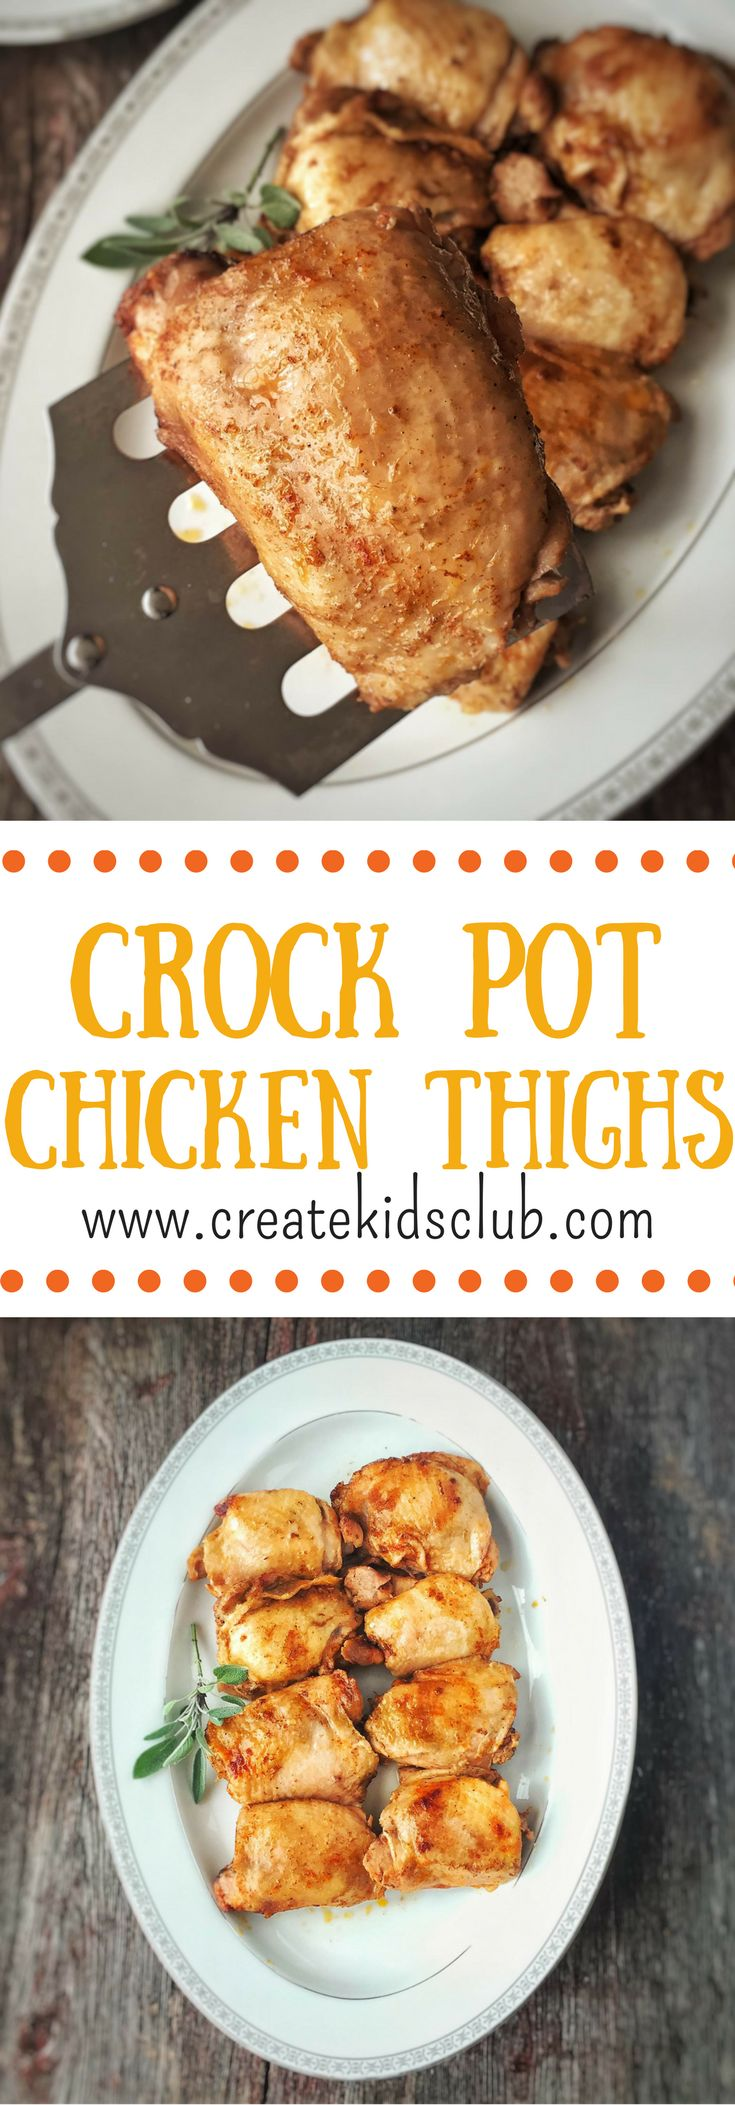 Crockpot chicken thigh recipes for Healthy crockpot recipes with chicken